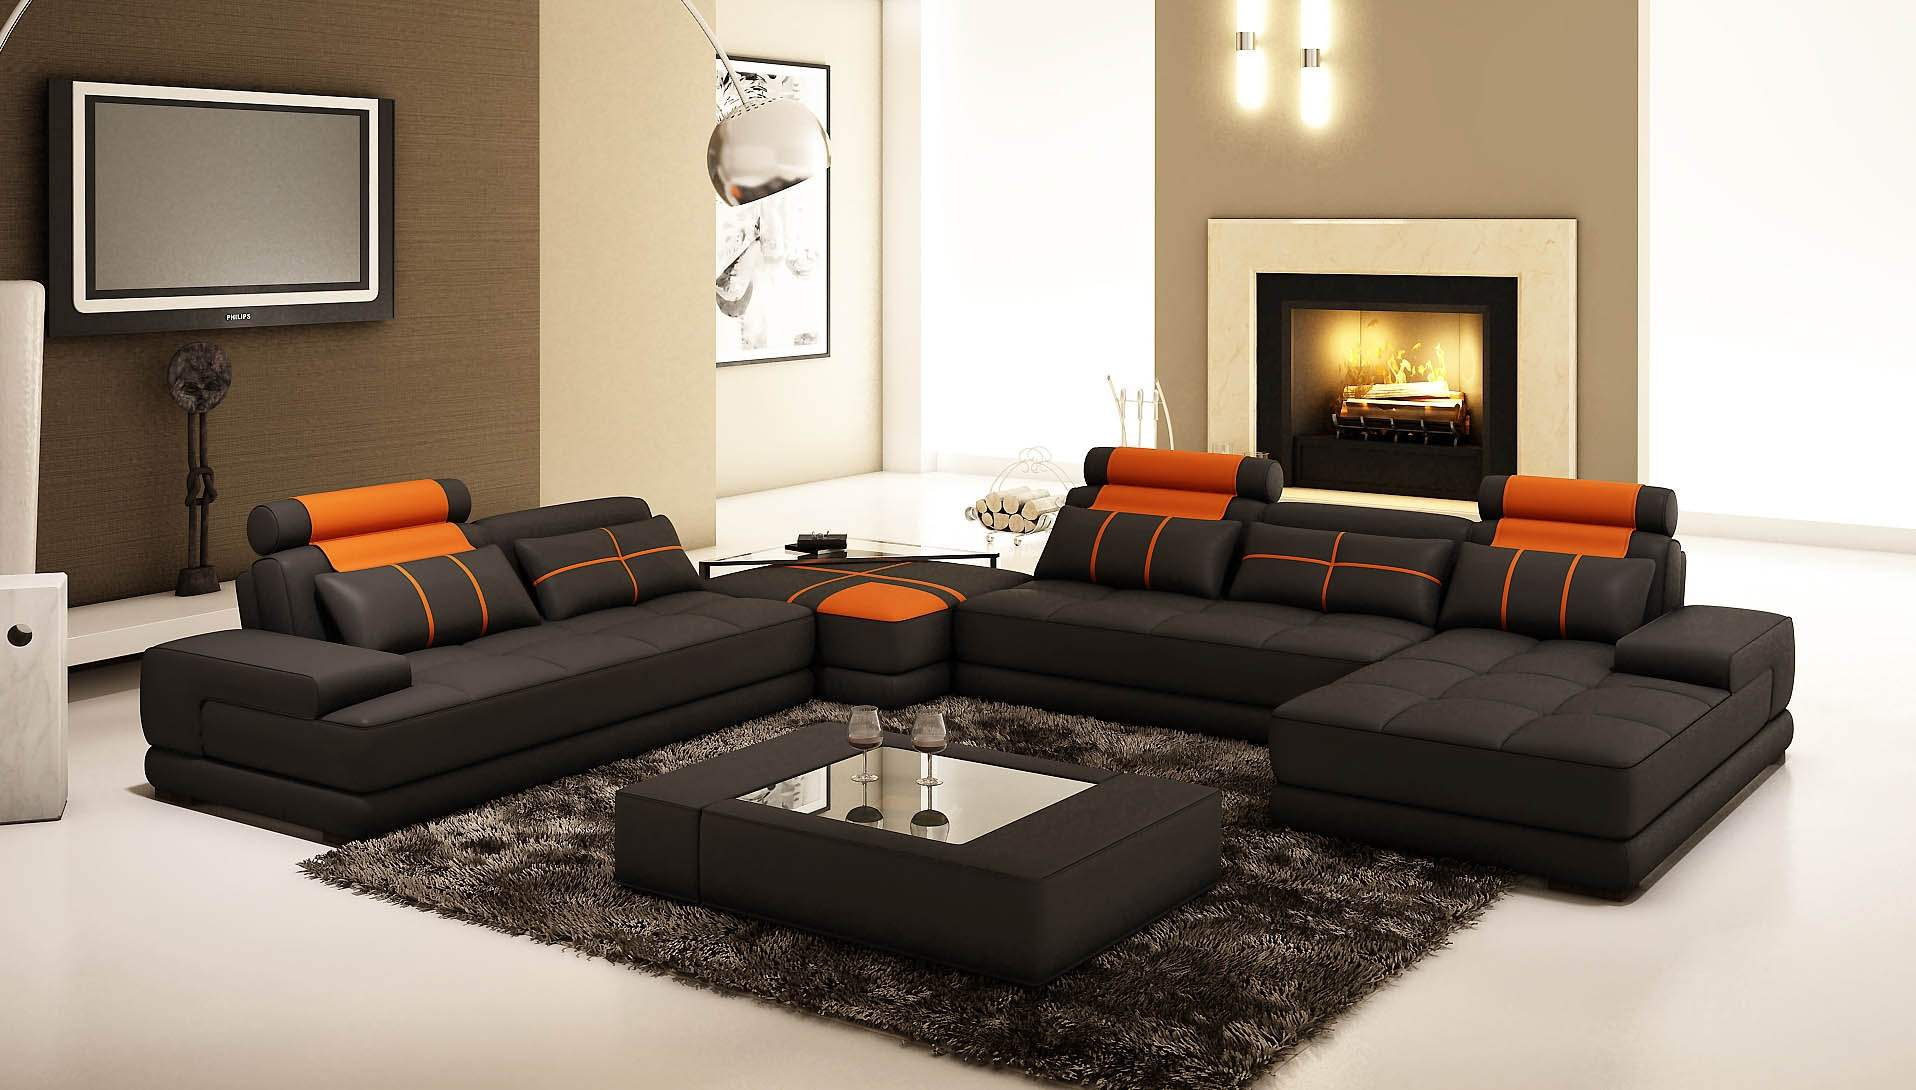 photo divan sofa set images divan sofa design savaeorg. Black Bedroom Furniture Sets. Home Design Ideas